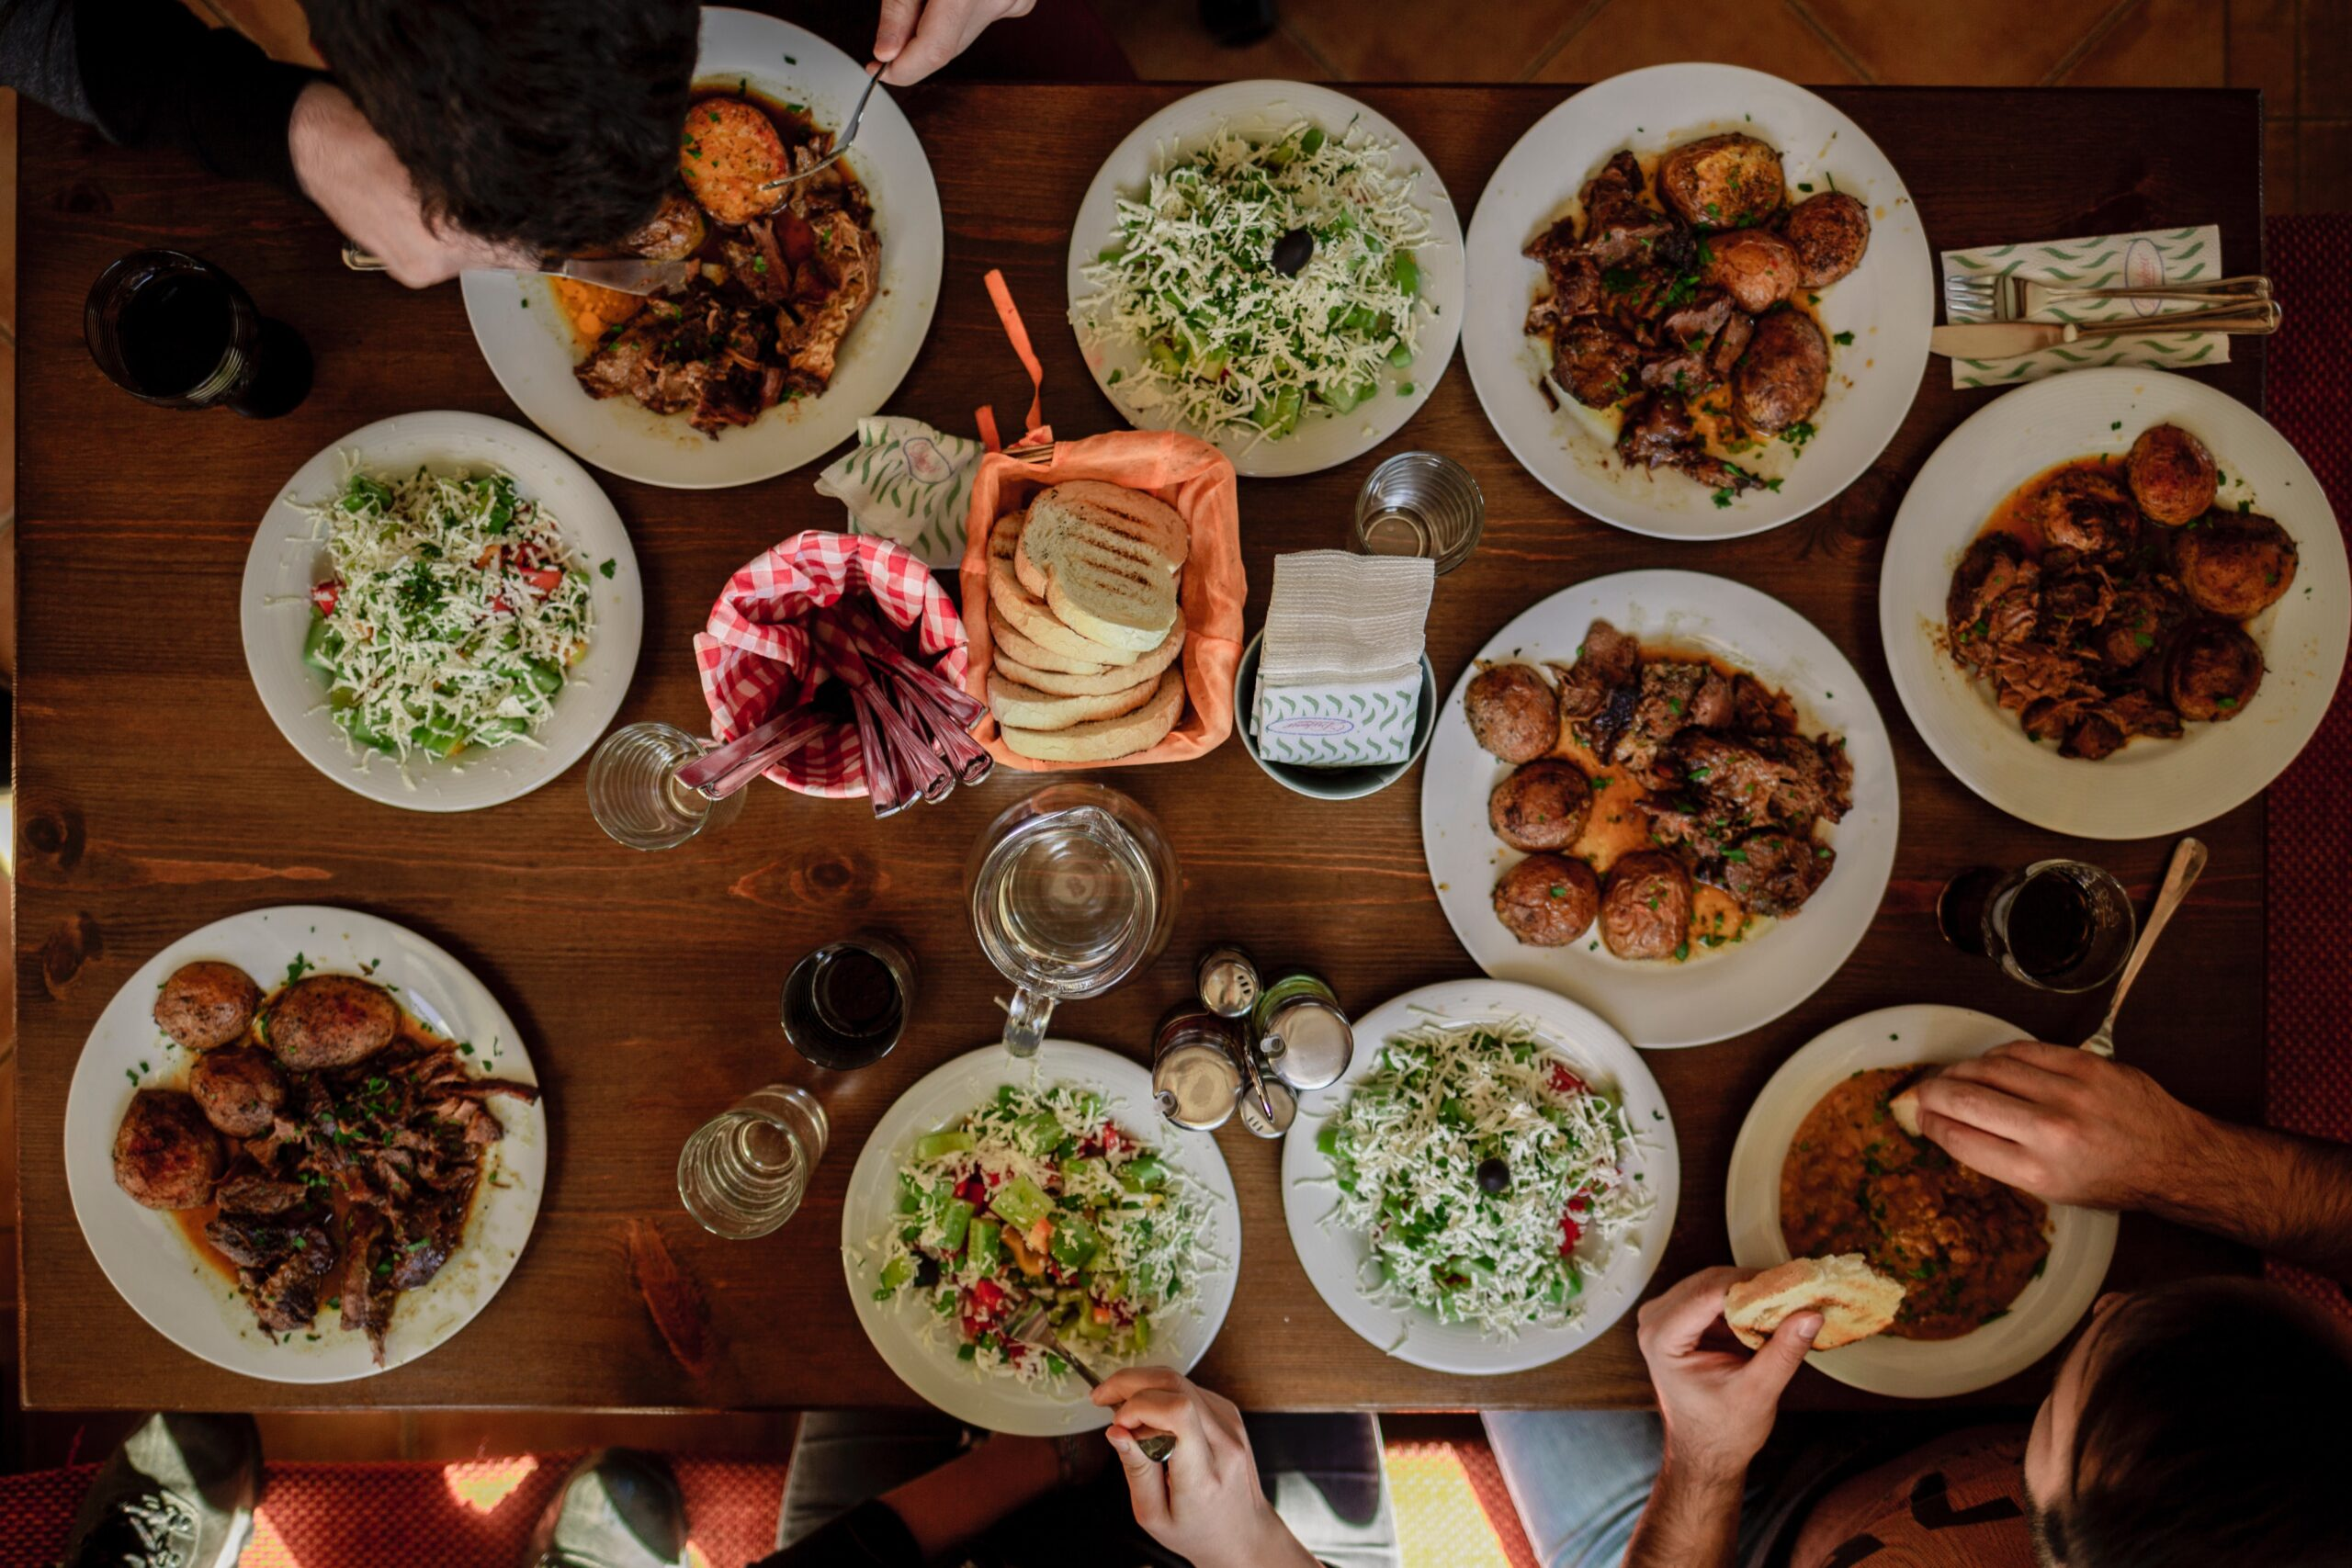 Crowded dining table